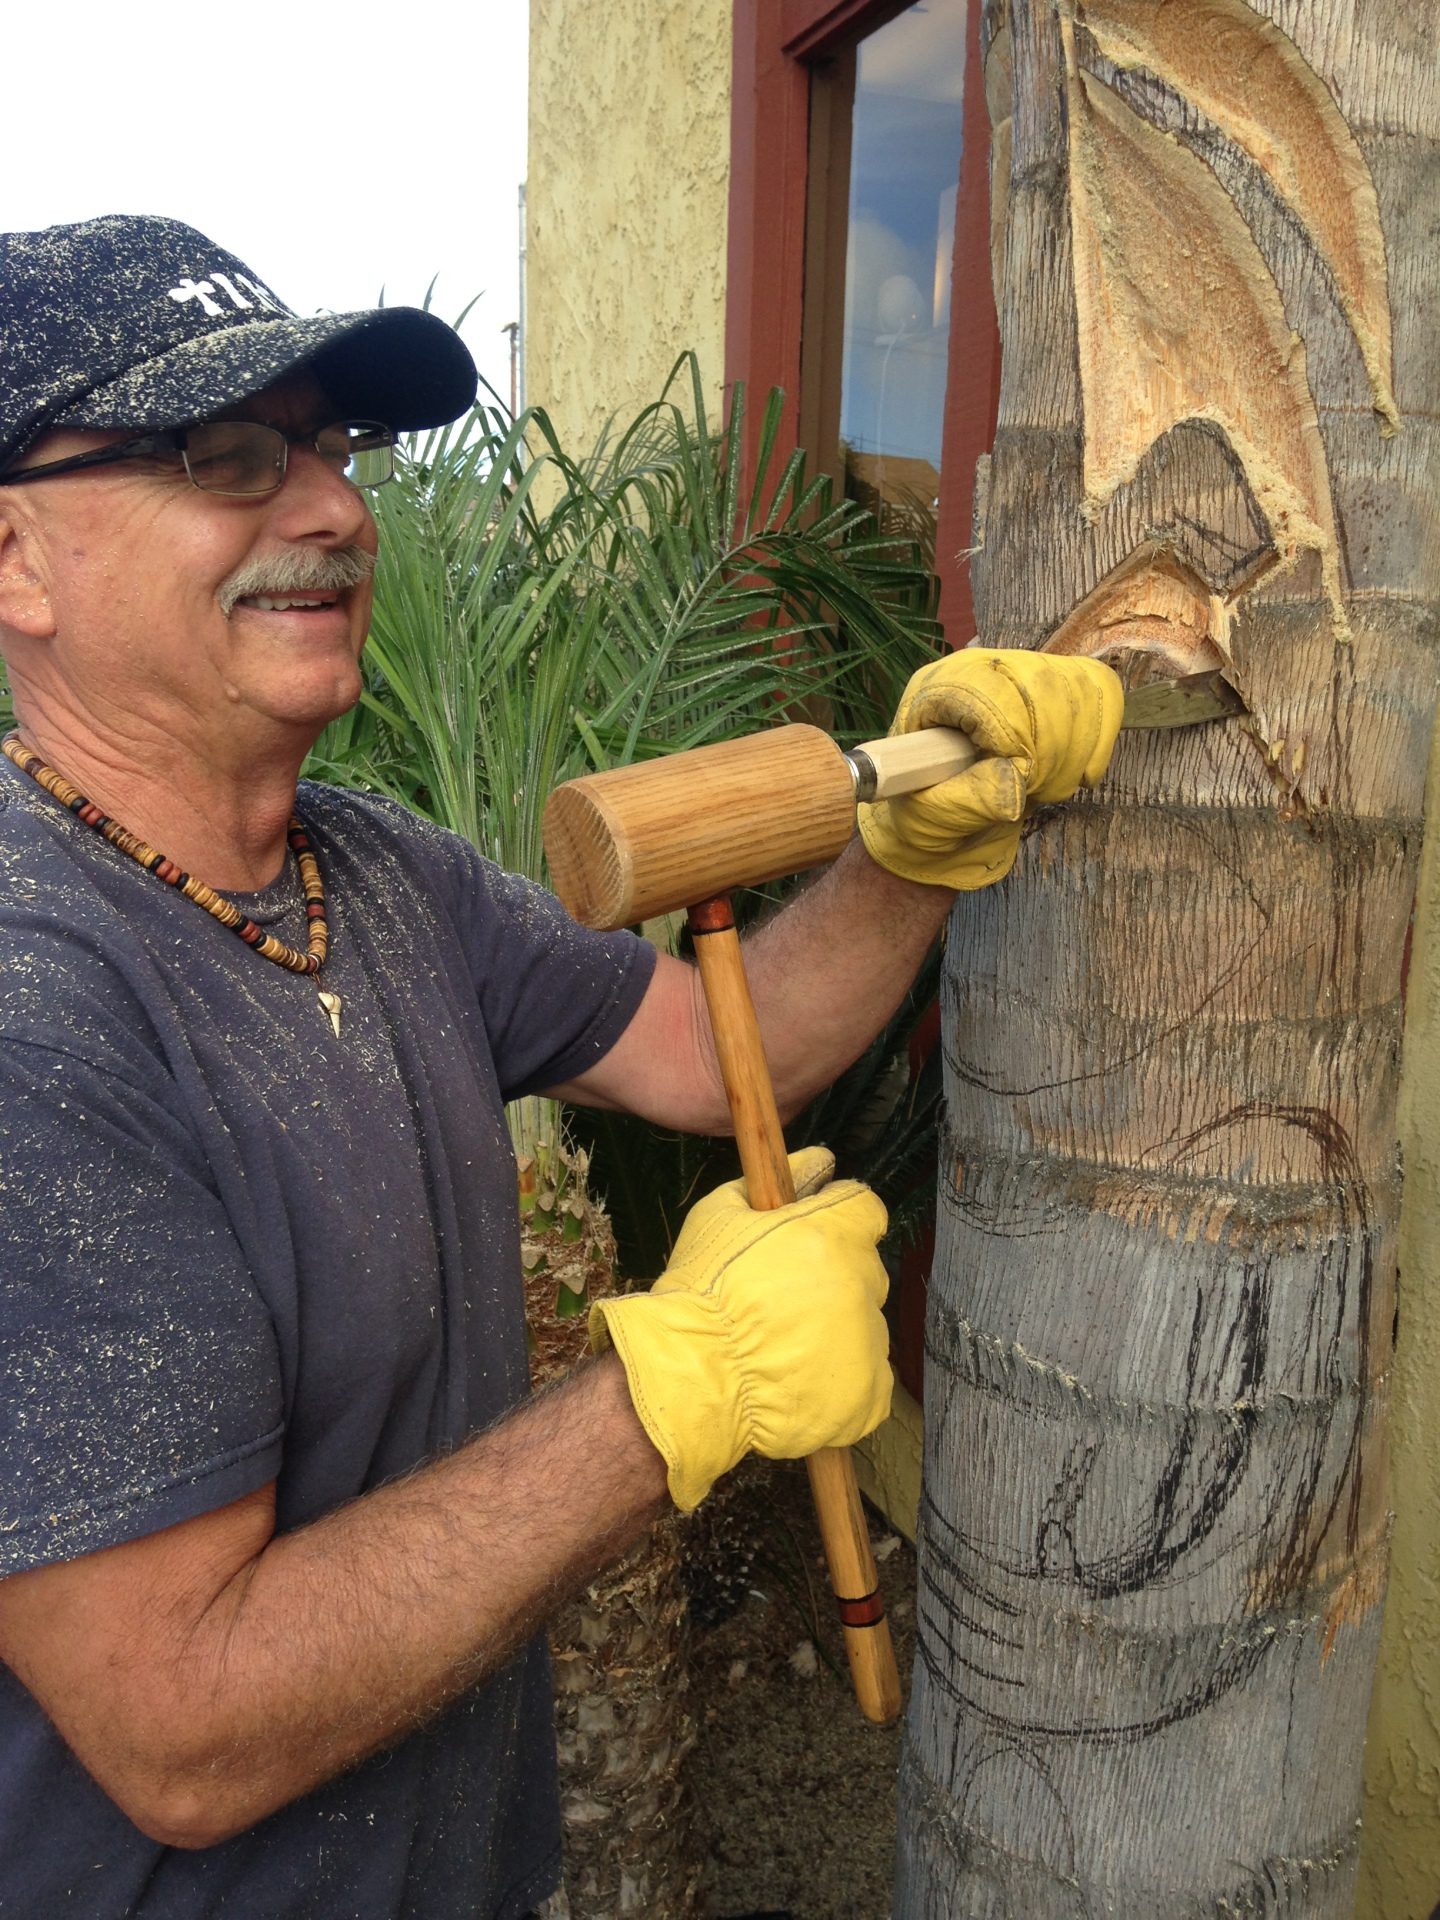 David Shultz, Tiki Creator, Brings the Aloha Spirit and Tiki Culture to SoCal